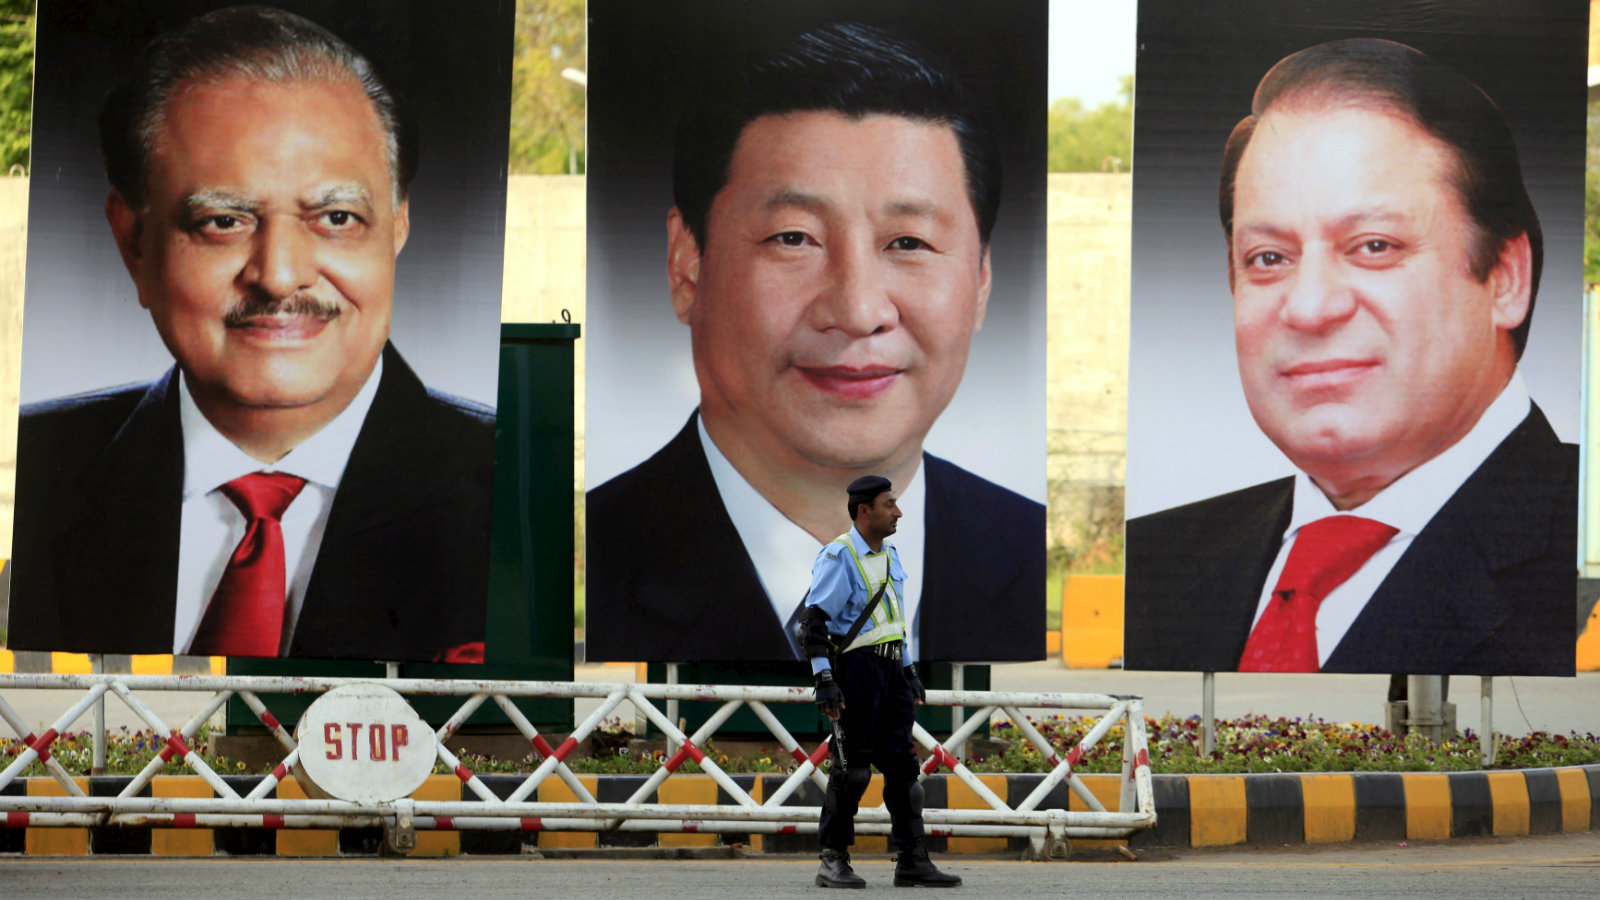 A policeman stands guard next to giant portraits of (L-R) Pakistan's President Mamnoon Hussain, China's President Xi Jinping, and Pakistan's Prime Minister Nawaz Sharif, displayed along a road ahead of Xi's visit to Islamabad April 19, 2015. Xi will visit Pakistan on April 20 on a two day official visit to meet Pakistani leadership.